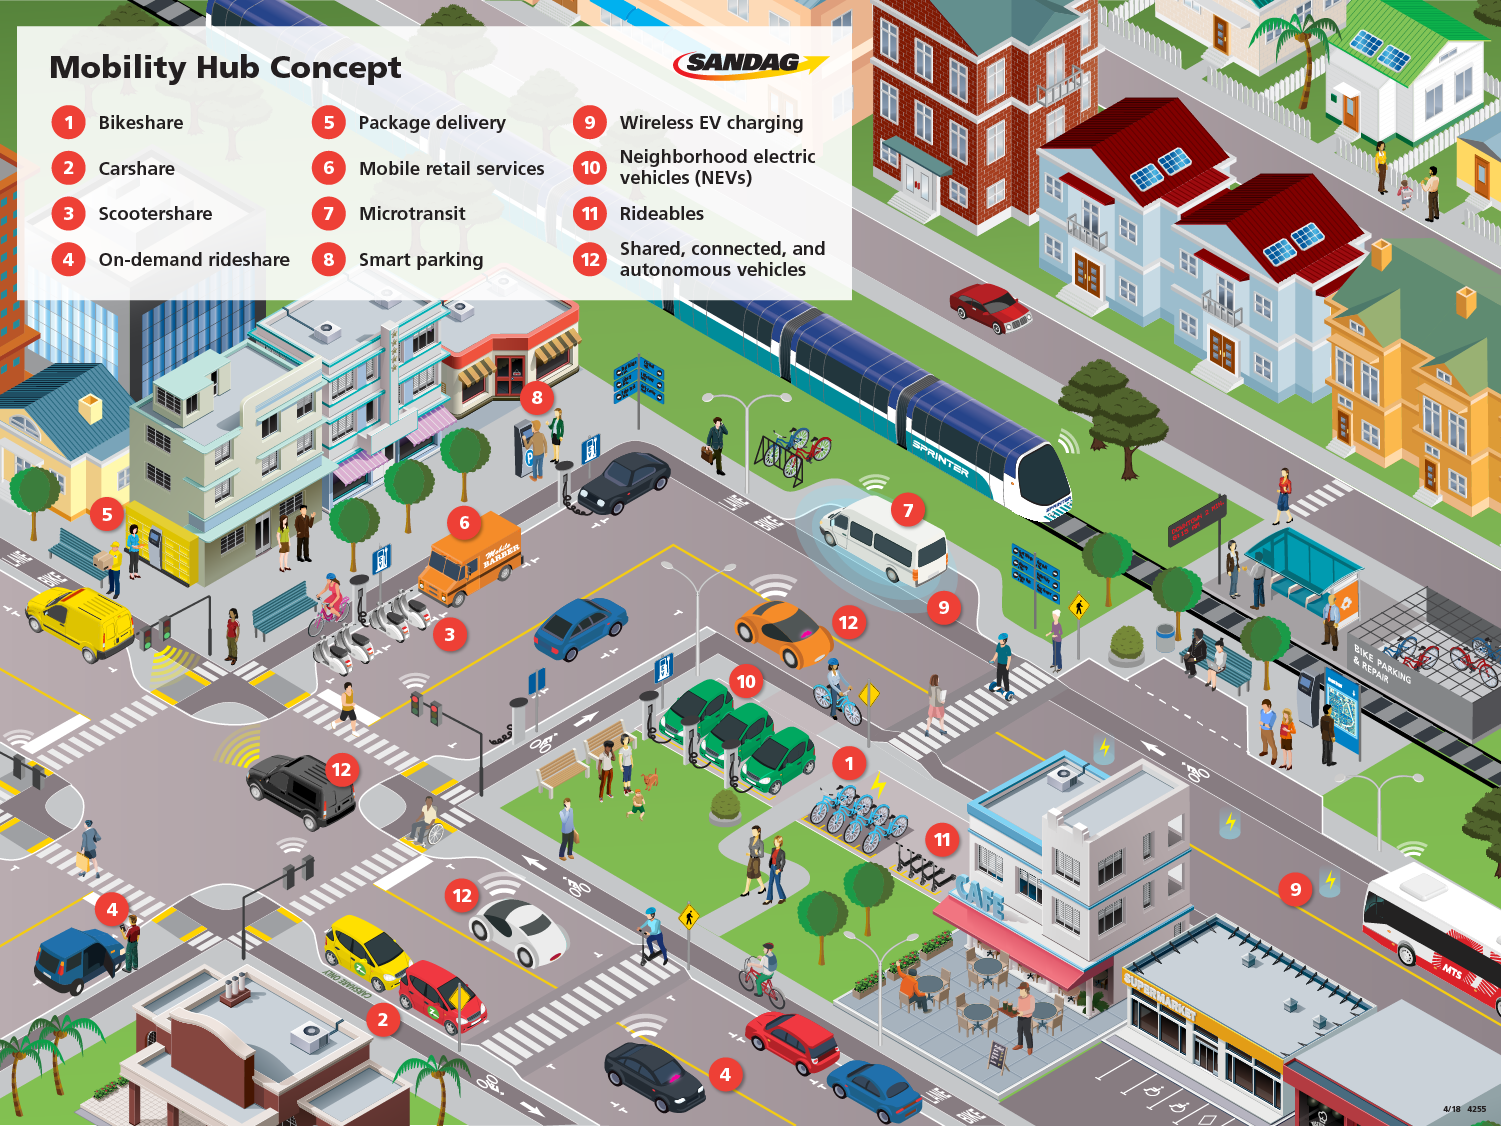 Mobility hubs are places of connectivity where different modes of travel – walking, biking, transit, and shared mobility – come together and where there is a concentration of employment, housing, shopping, and/or recreation. They provide an integrated suite of mobility services, amenities, and technologies to bridge the distance between high-frequency transit and an individual's origin or destination. This graphic is divided into layers that illustrate the various features that may comprise a mobility hub.